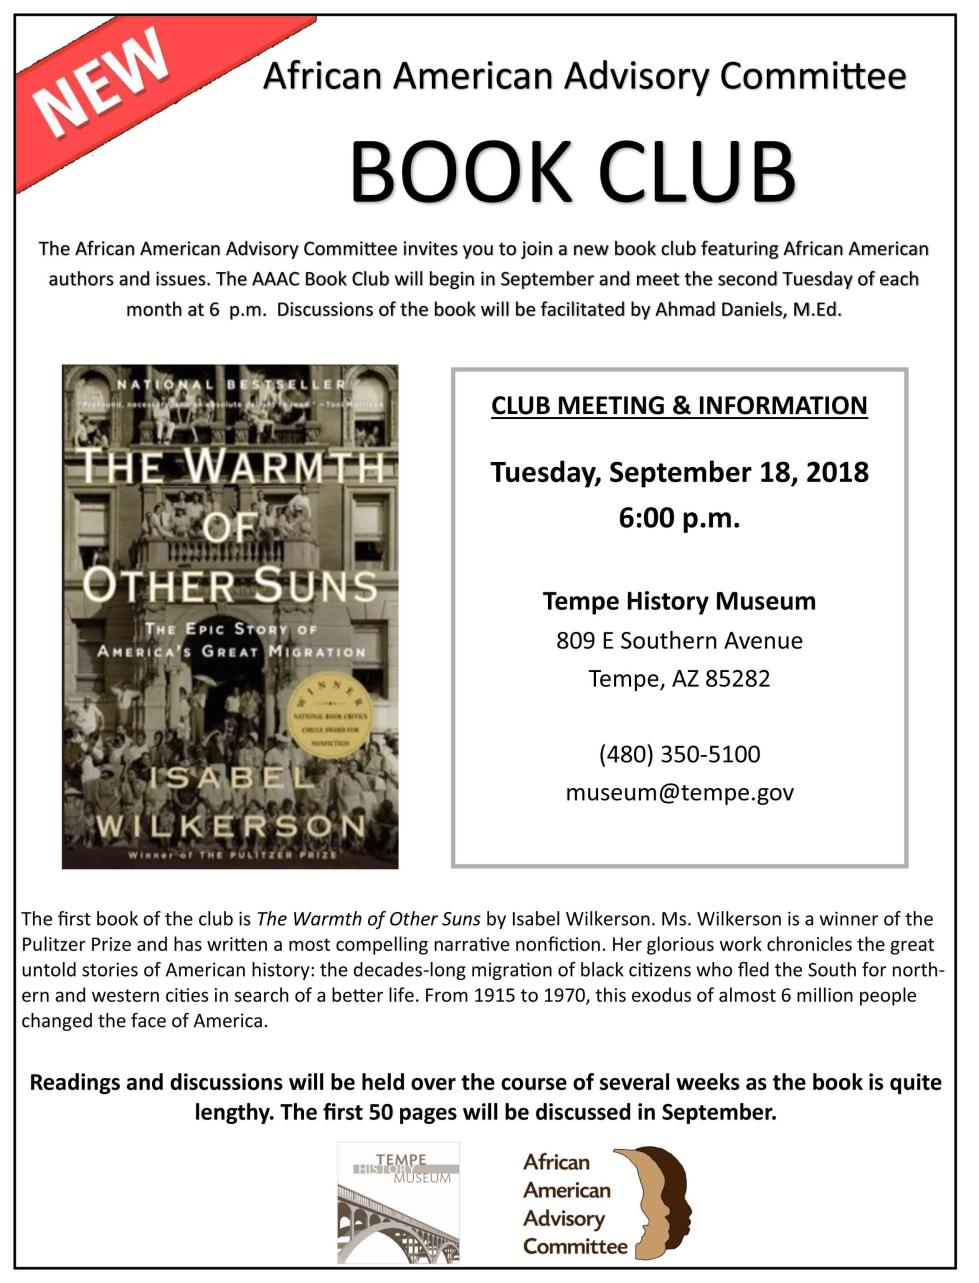 Book Club Flyer_2018_09